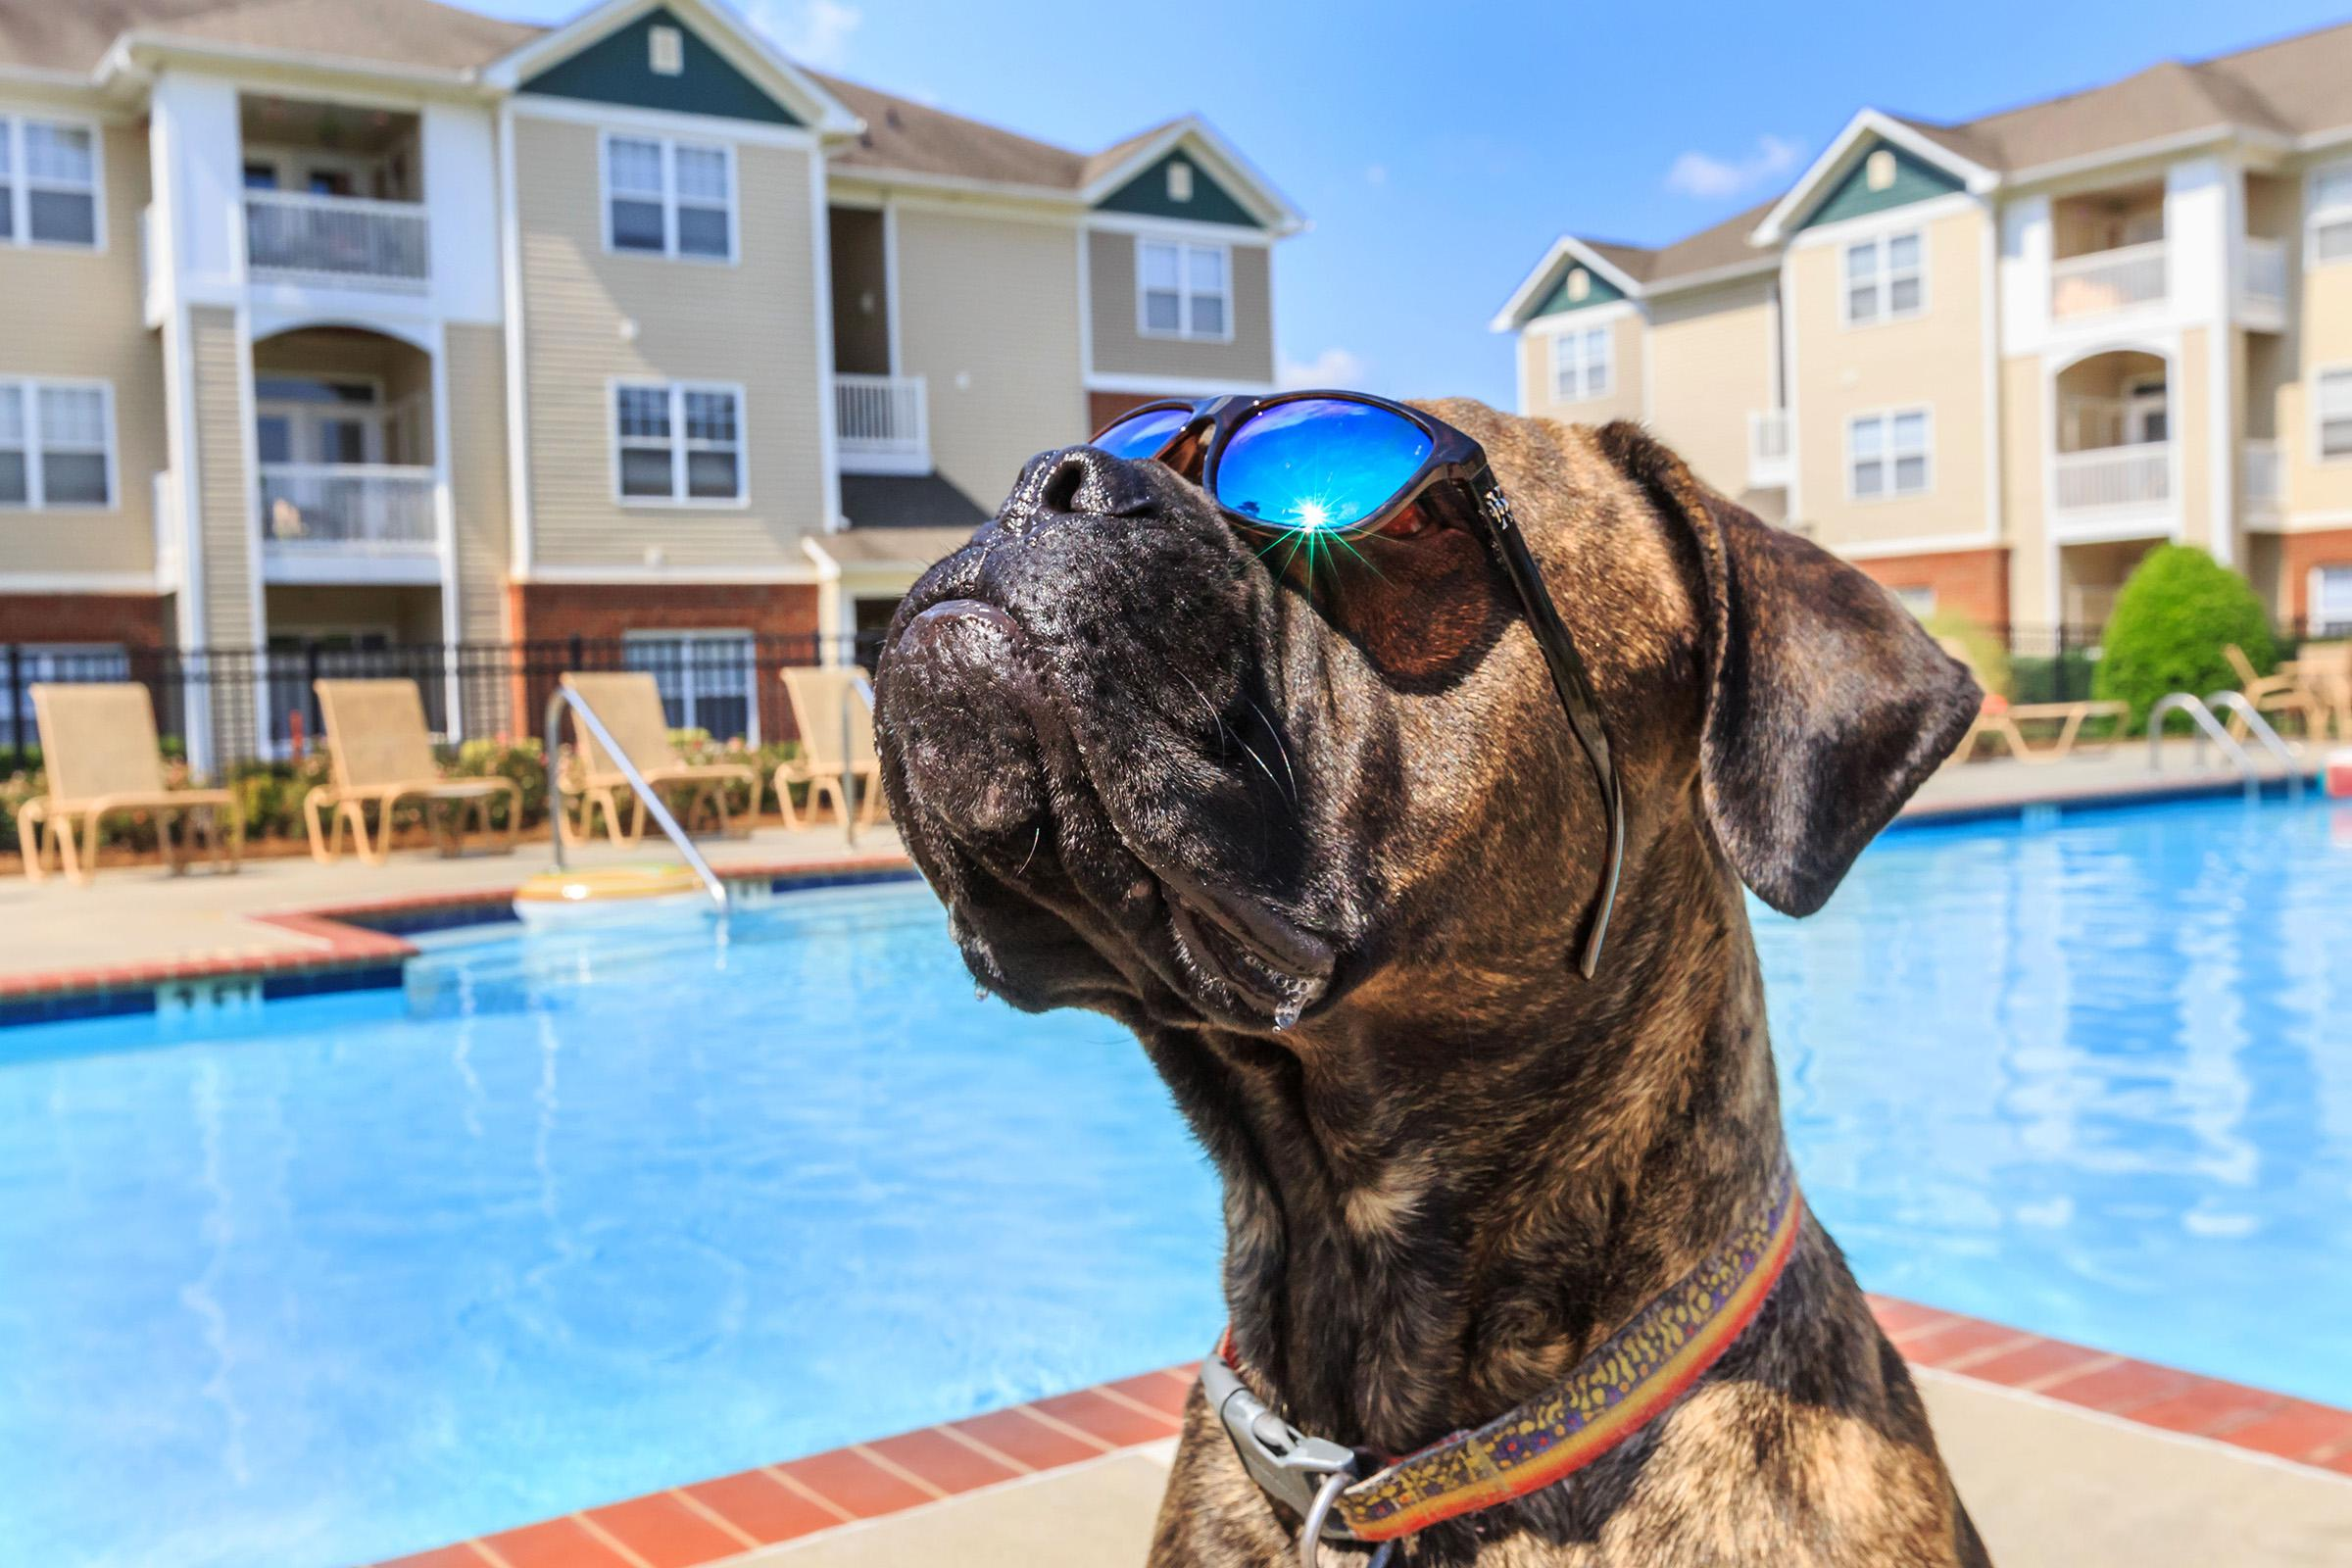 We welcome your furry friends at Bradford Park in Rock Hill, South Carolina